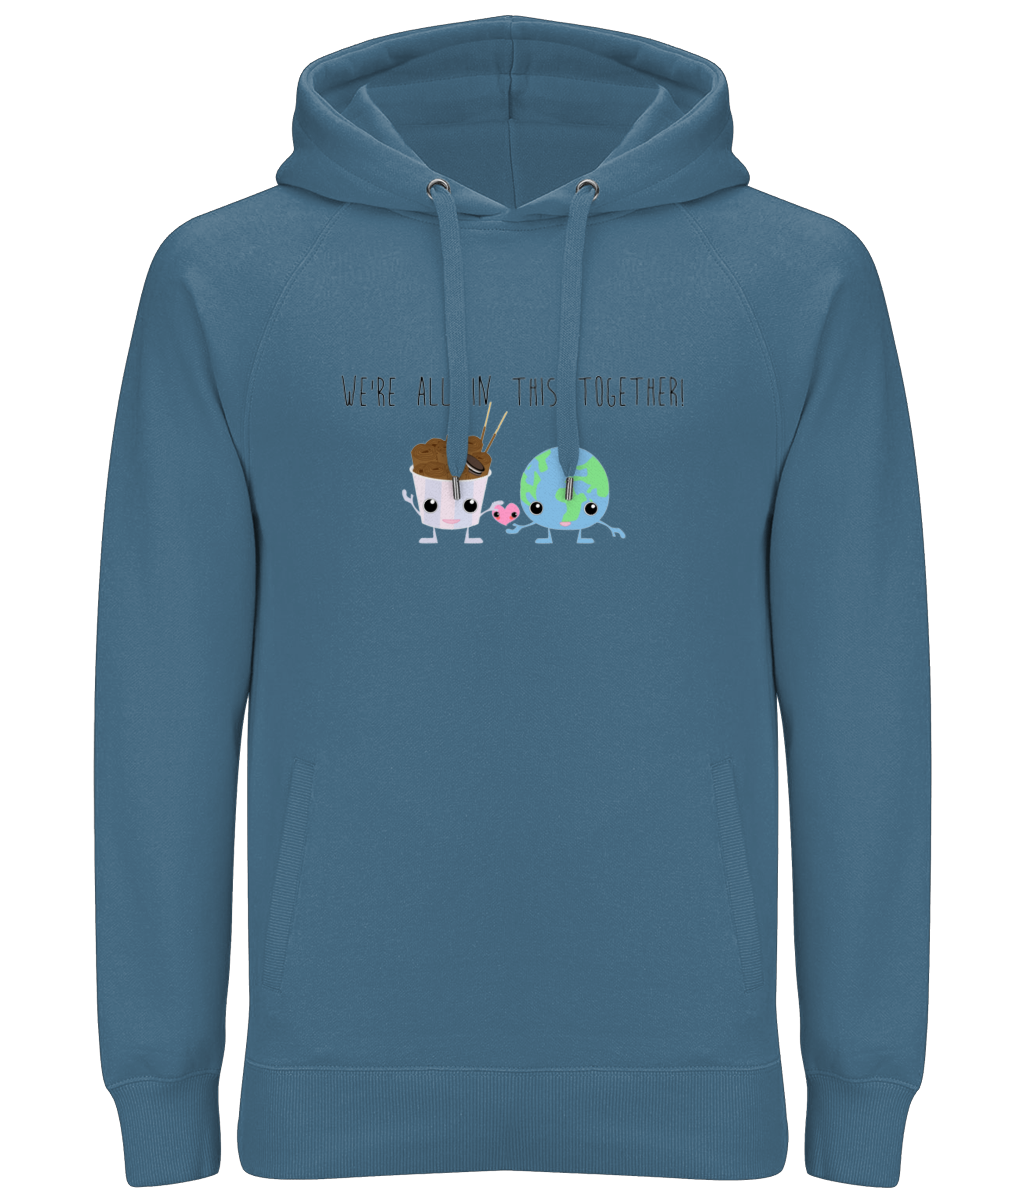 Unisex in this together hoodie **50% to Coronavirus charity**